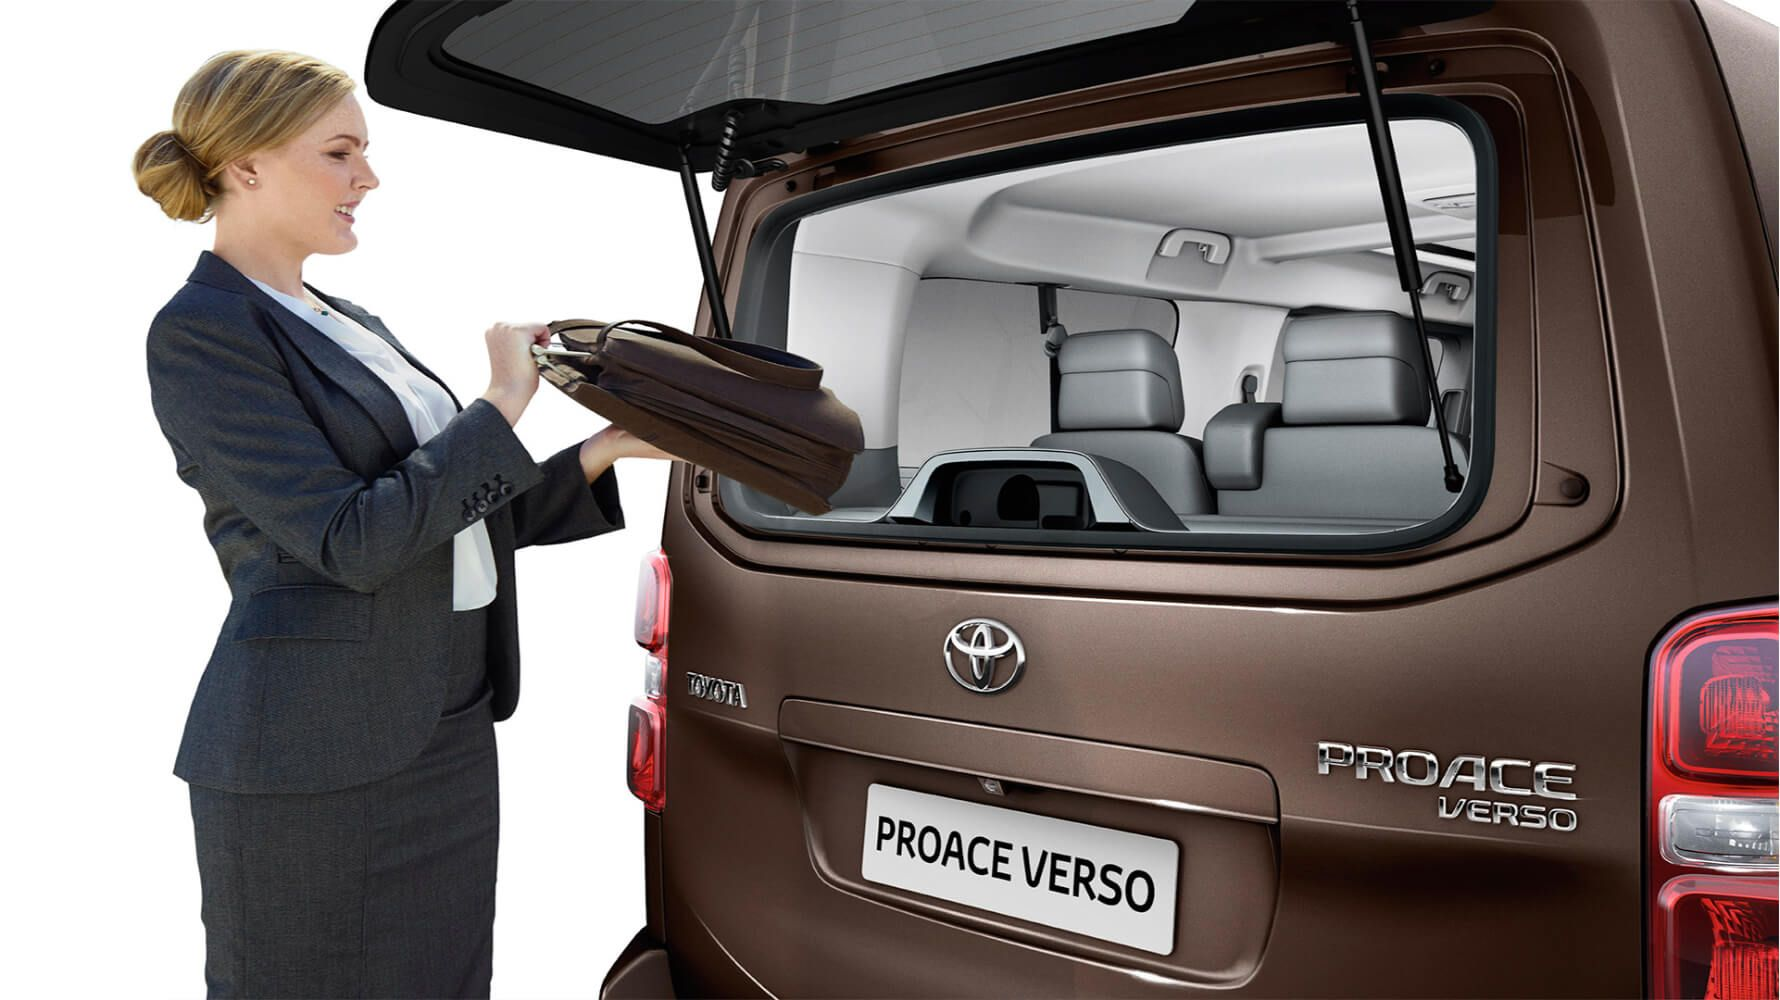 toyota_proace_verso_2019_gallery_018_full_tcm_3046_1703808